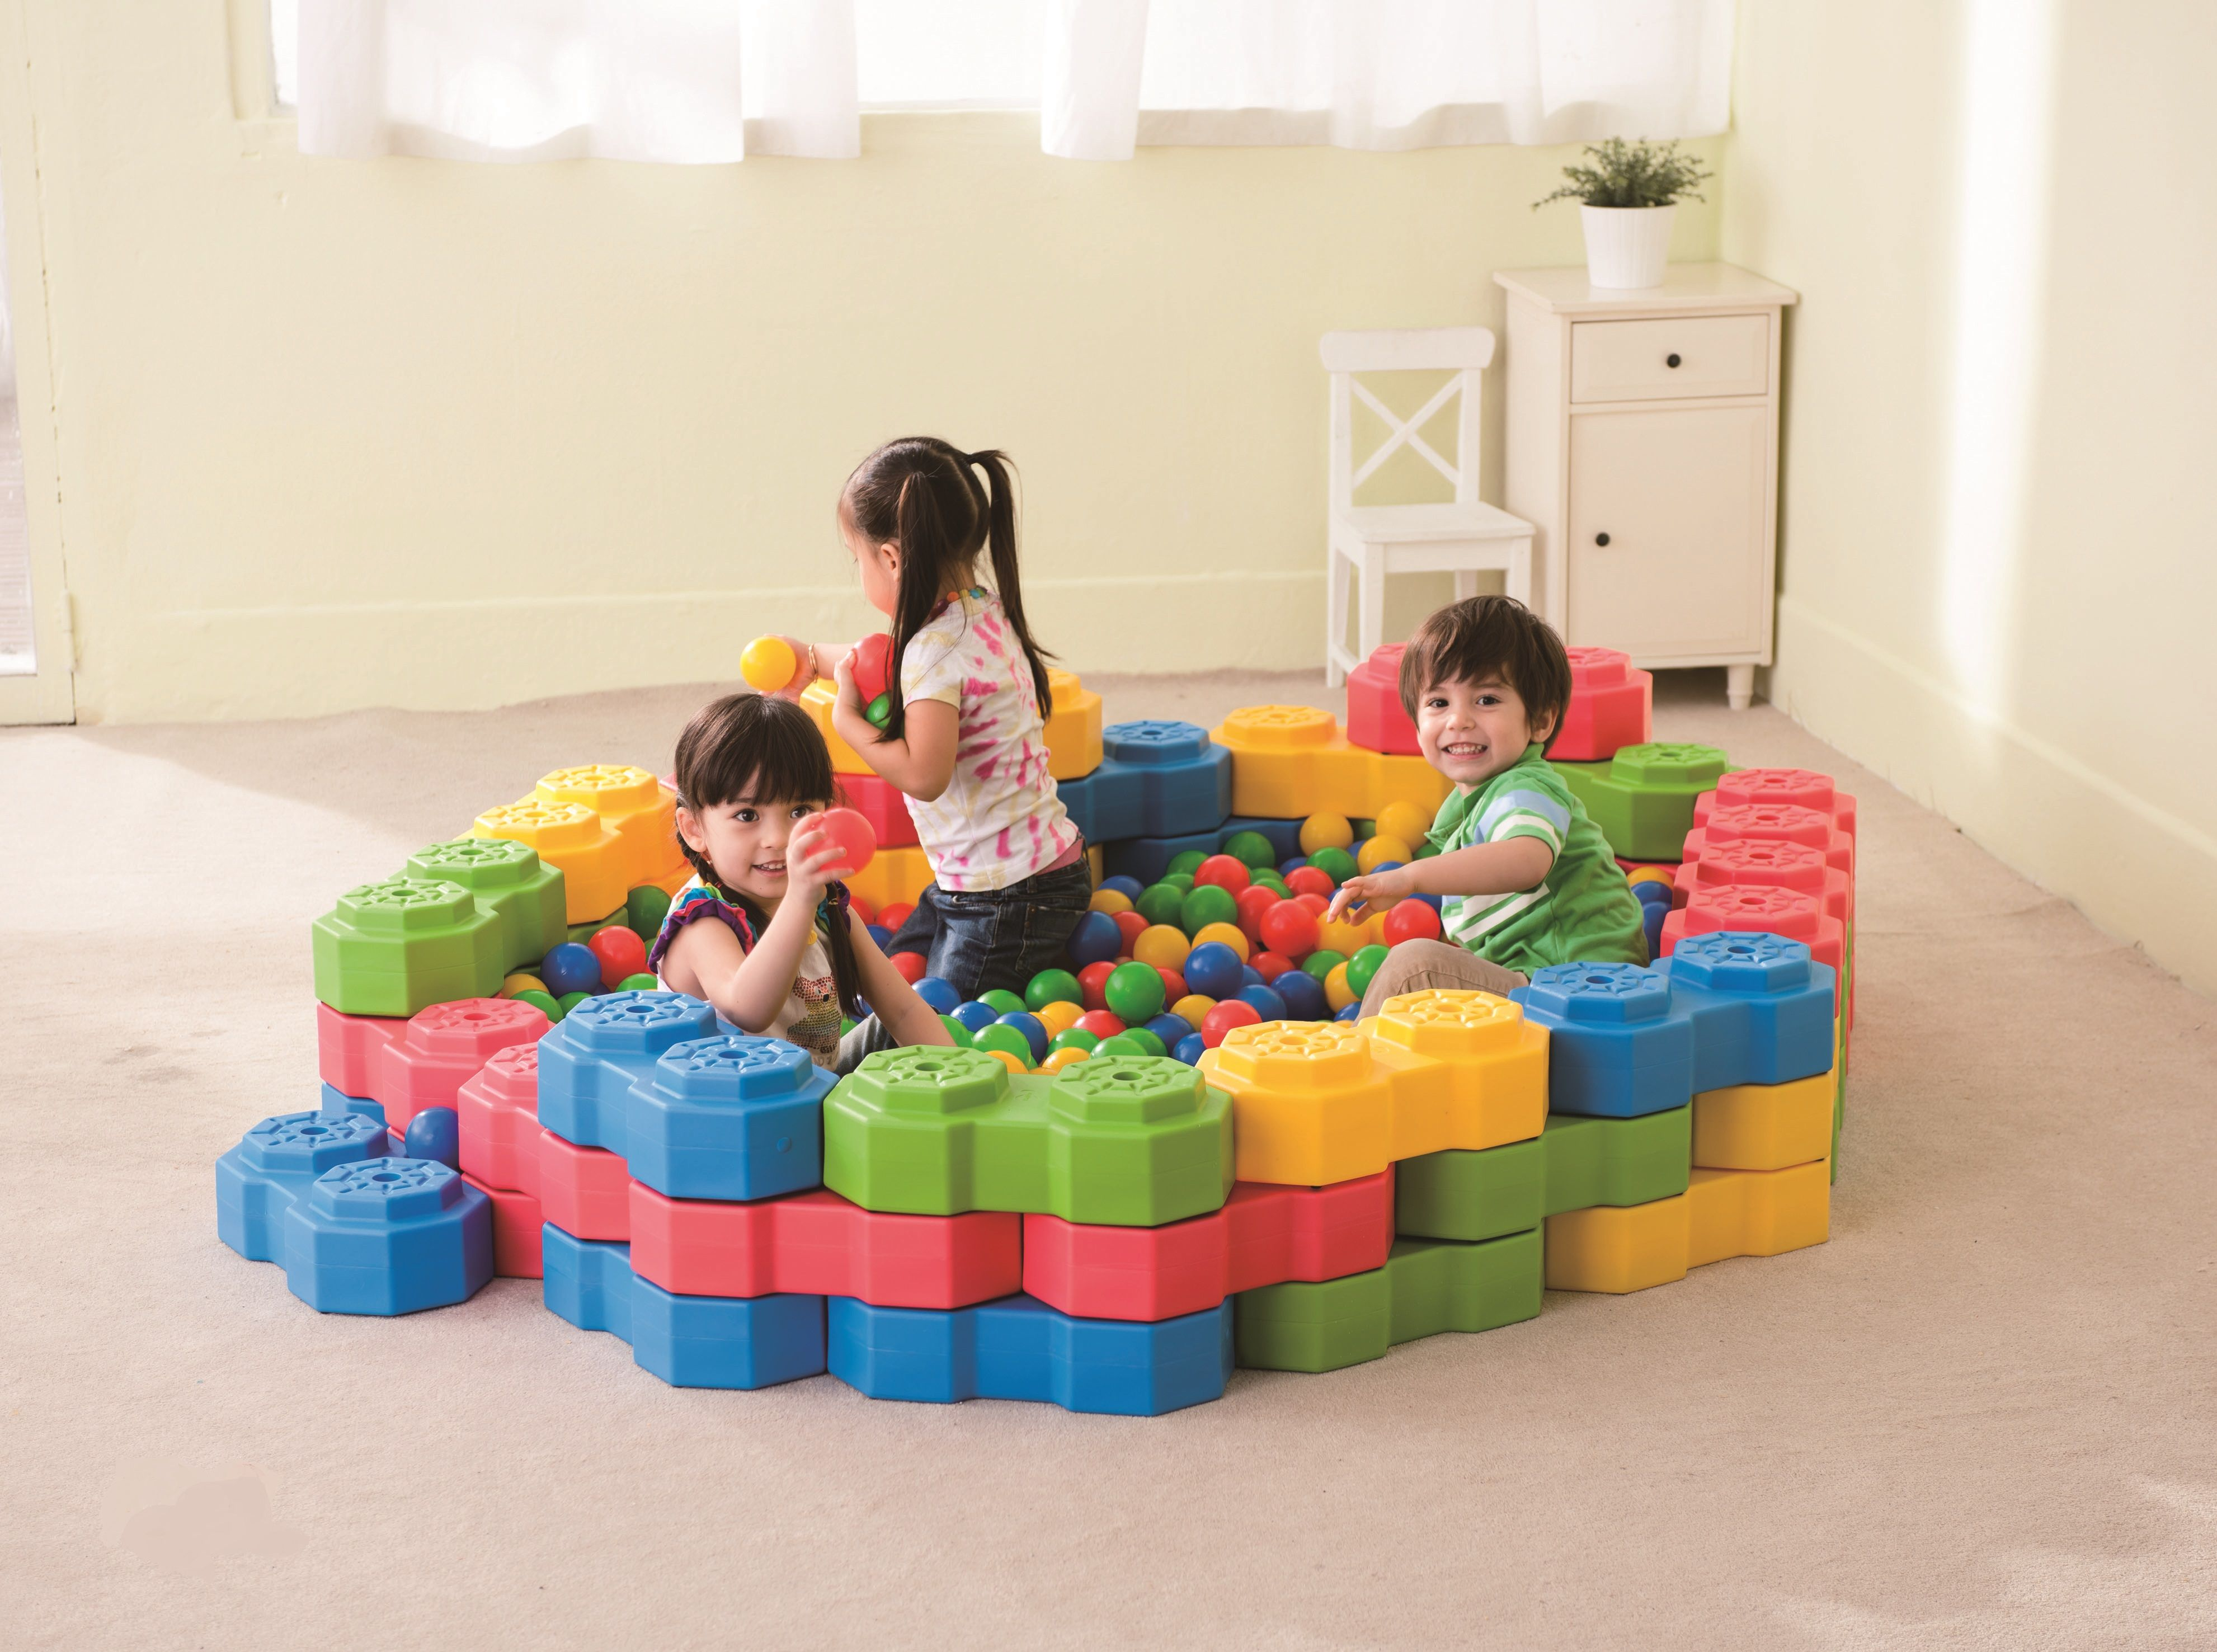 Used Toys For Toddlers : Octagon creative building blocks. they can be used to fence